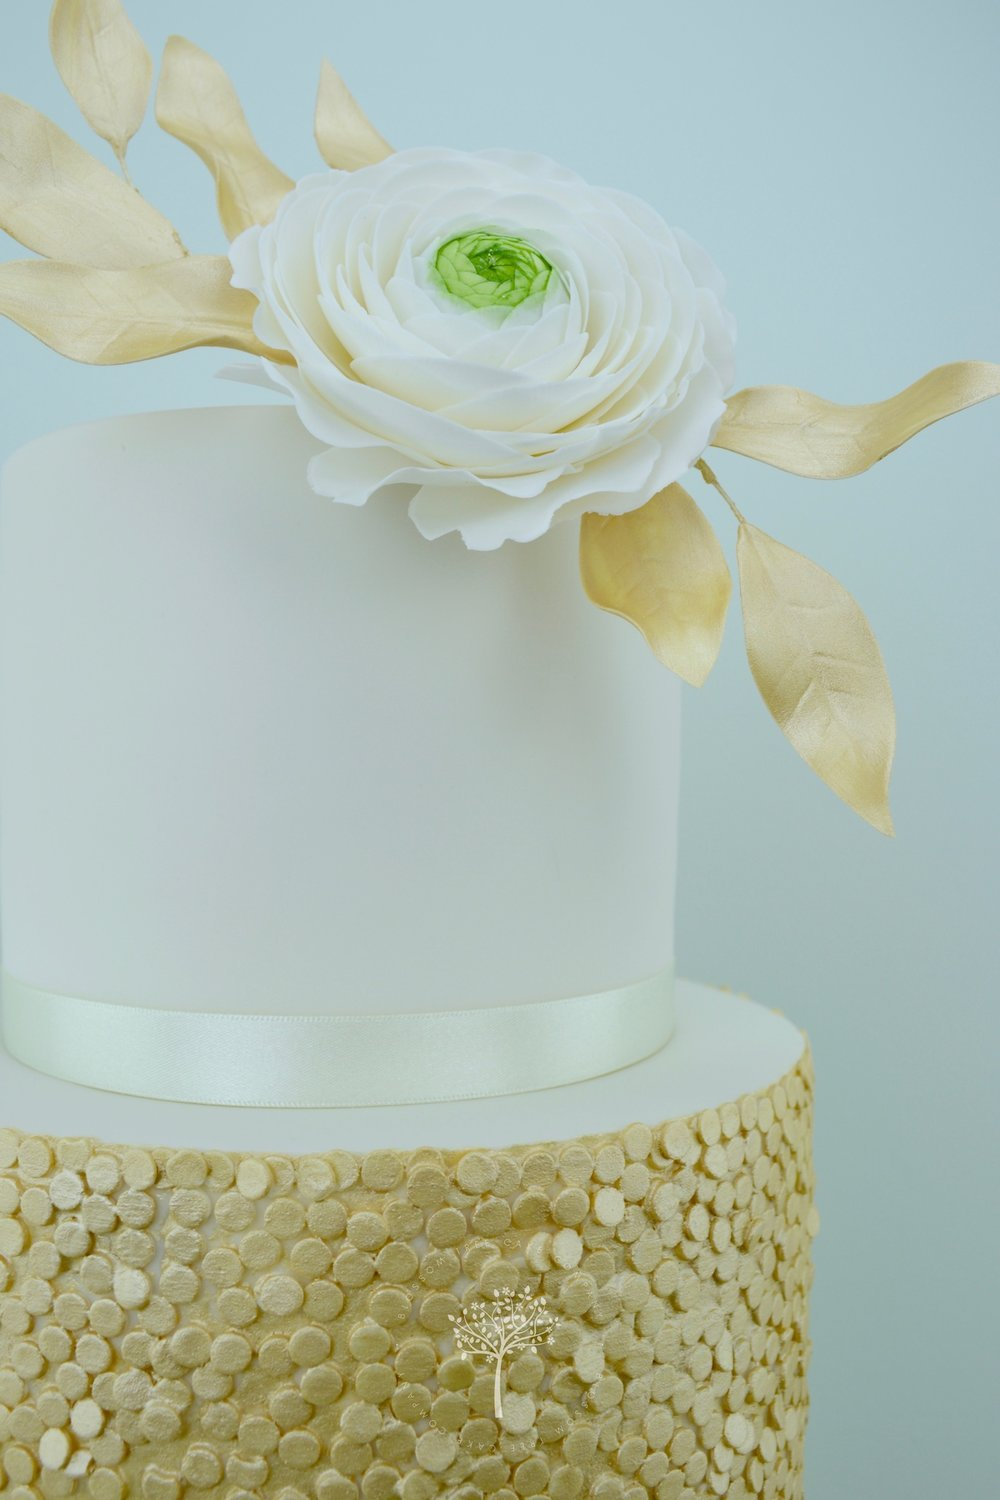 Ranunculus with Gold Sequins wedding cake by Blossom Tree Cake Company - ranunculus.jpg